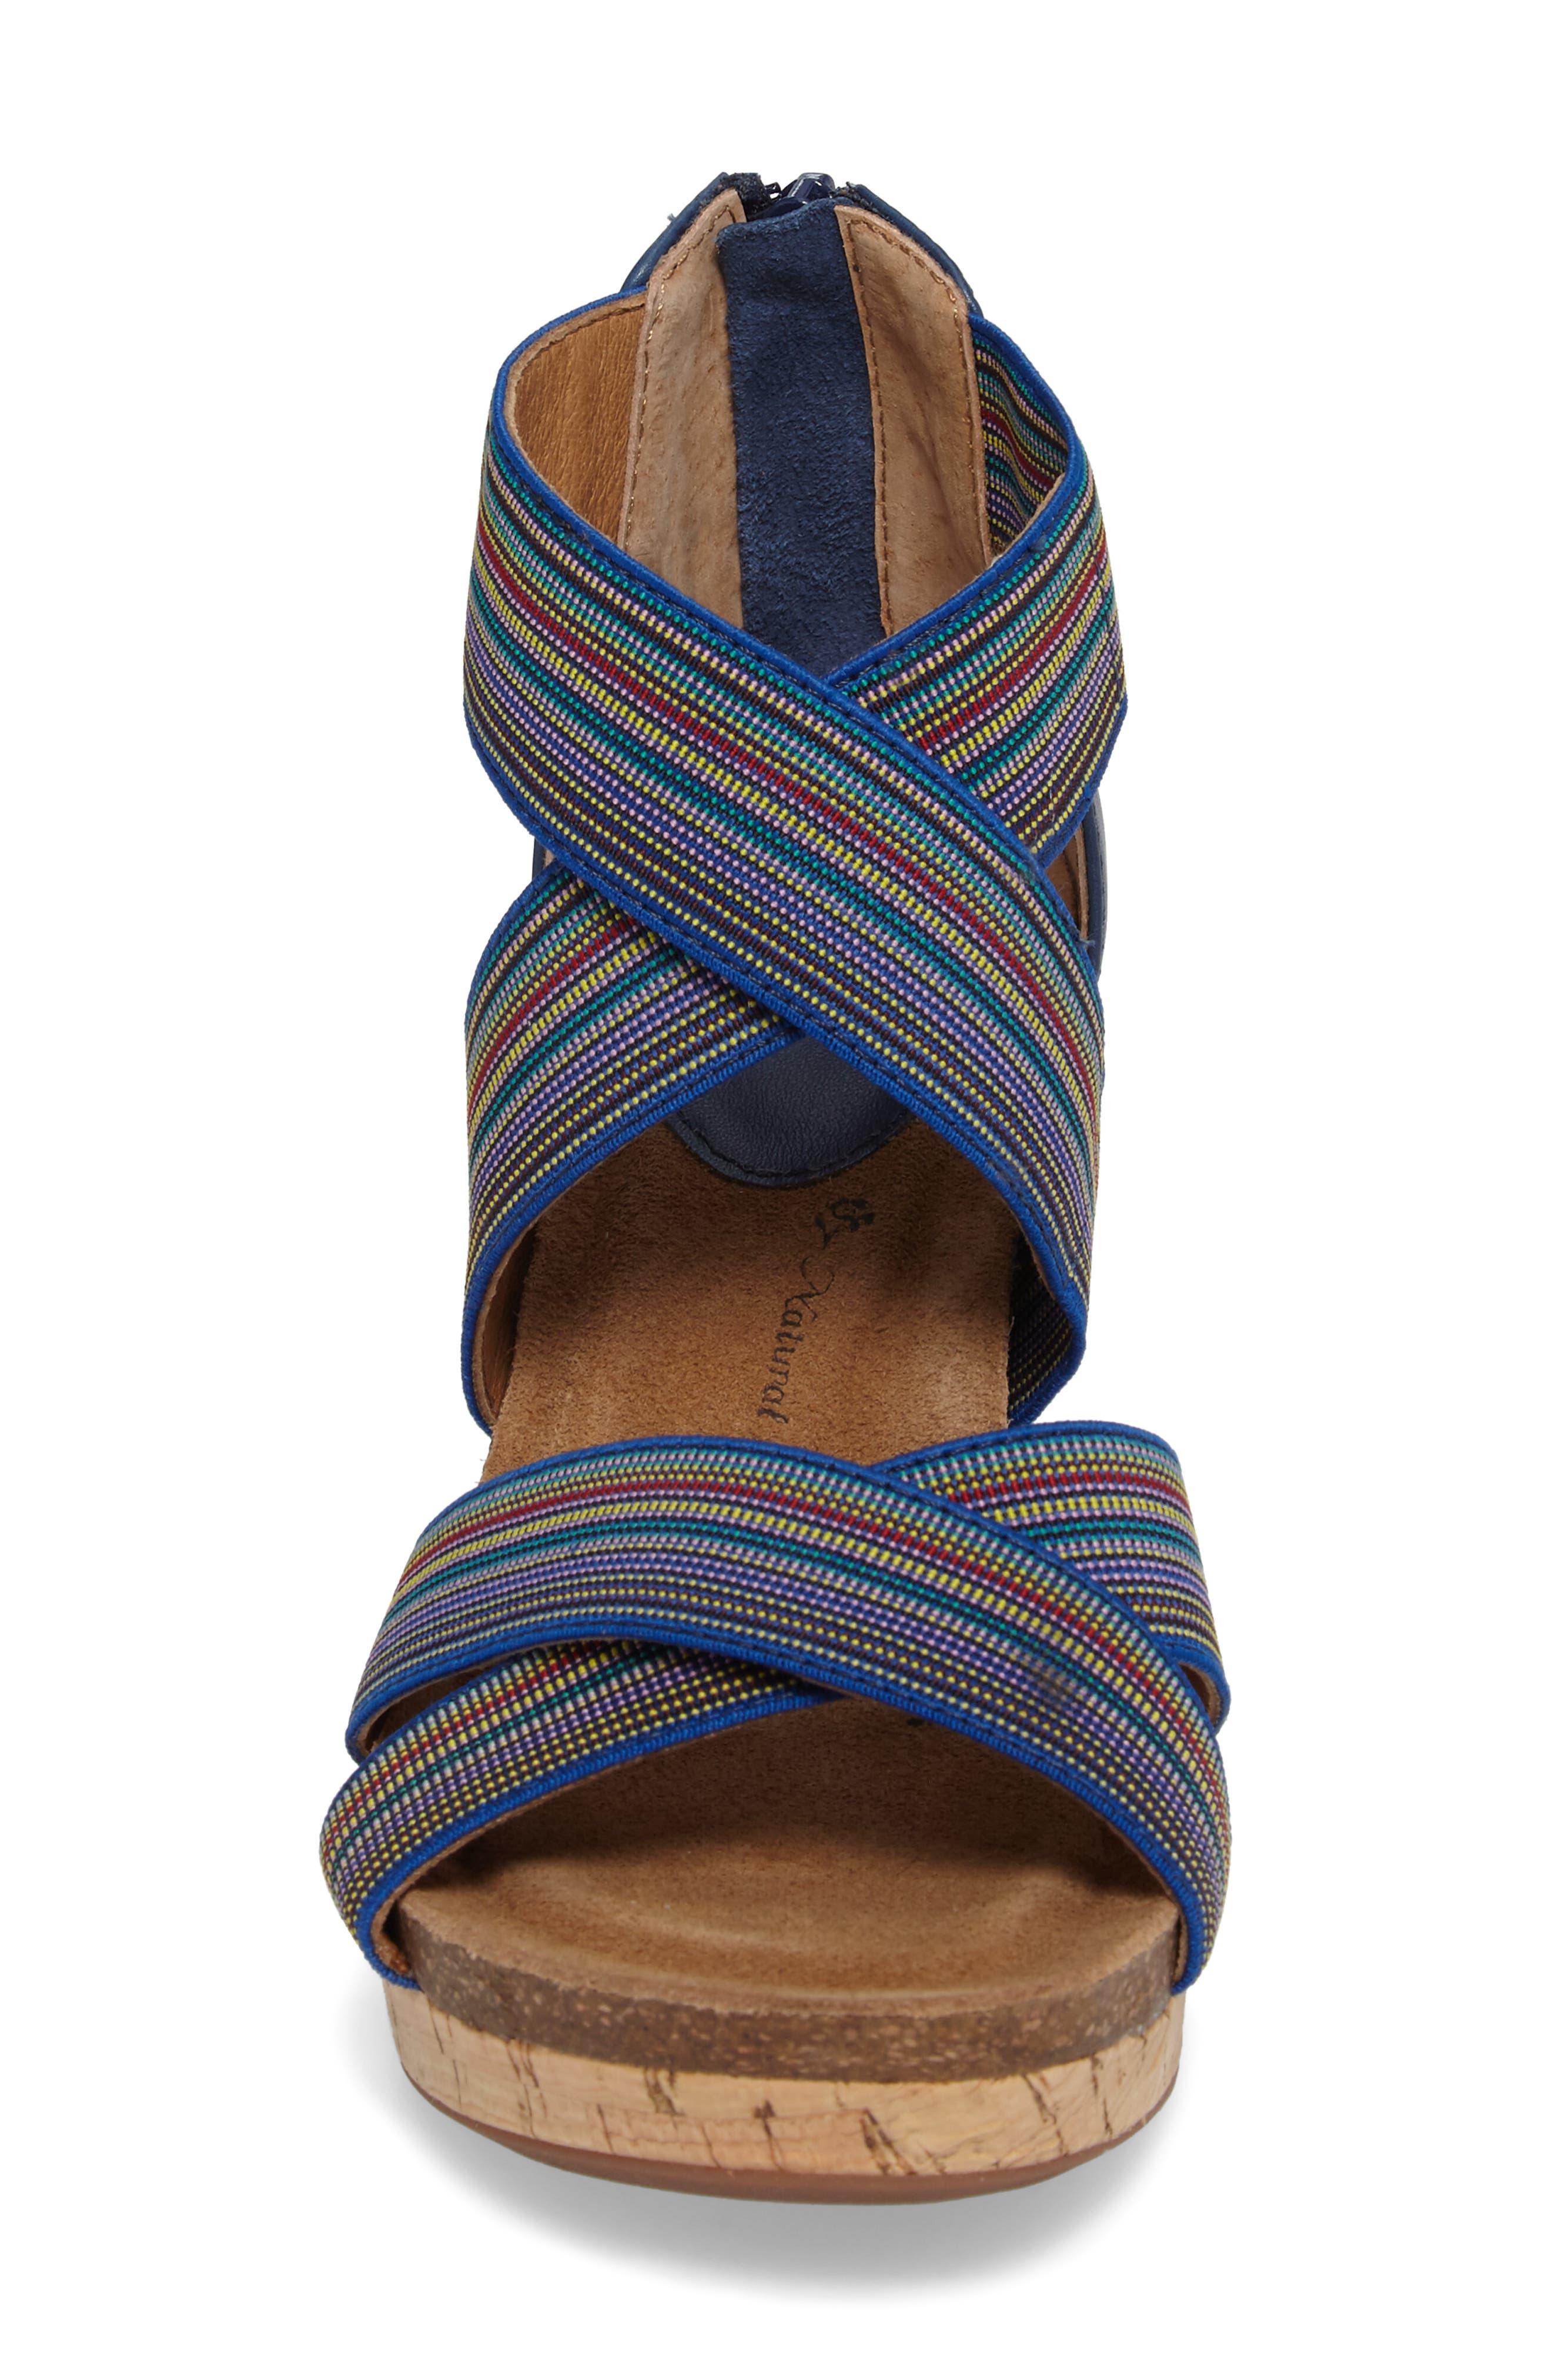 Cary Cross Strap Wedge Sandal,                             Alternate thumbnail 11, color,